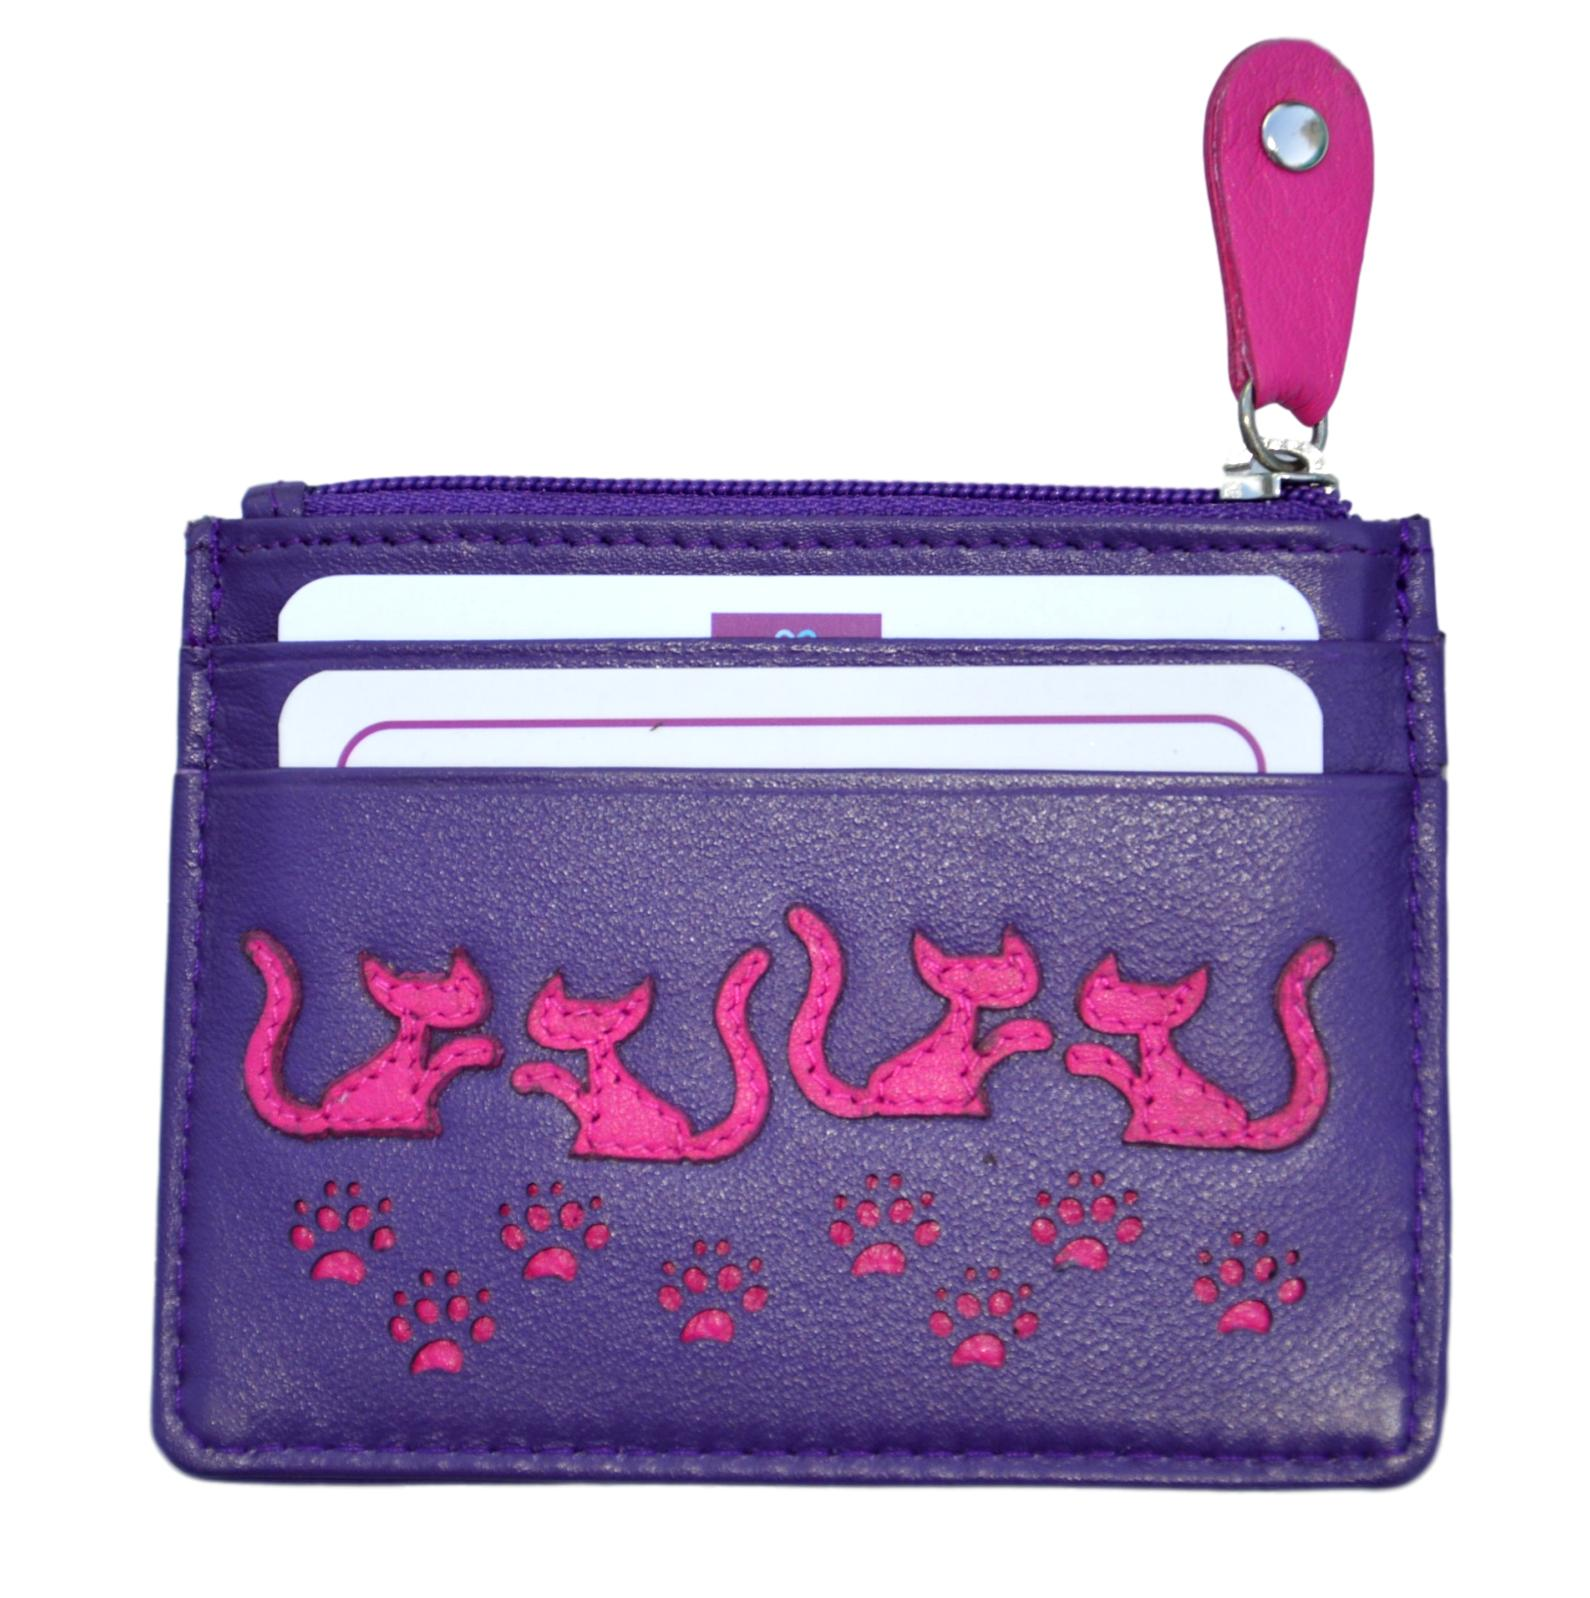 Mala Leather Purple Poppy Cat Coin and Card Holder Purse